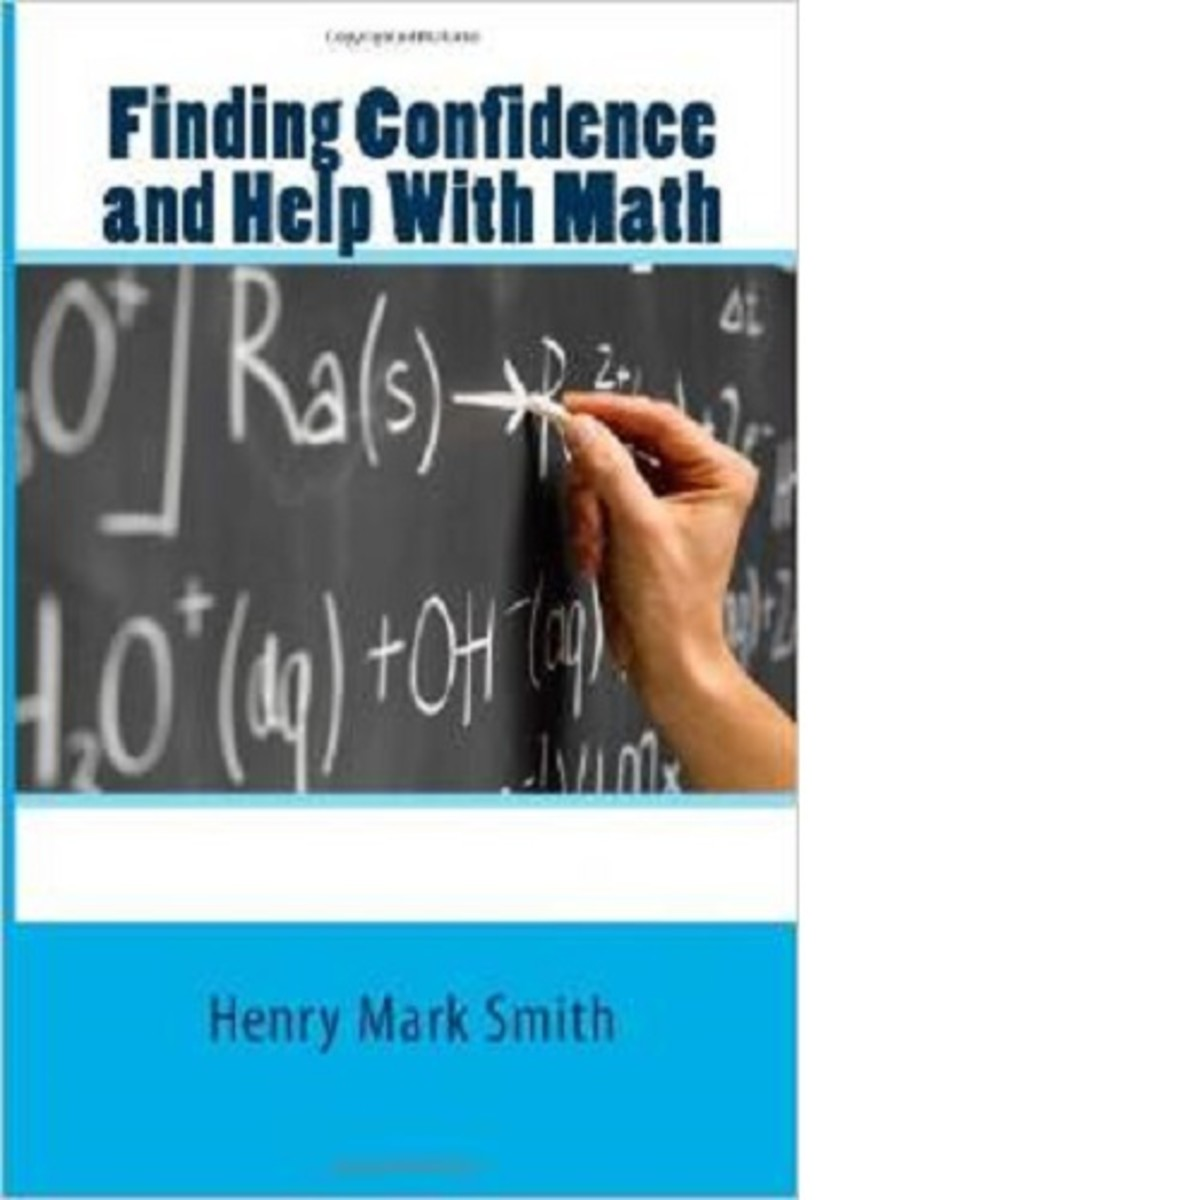 Finding Confidence and Help with Math